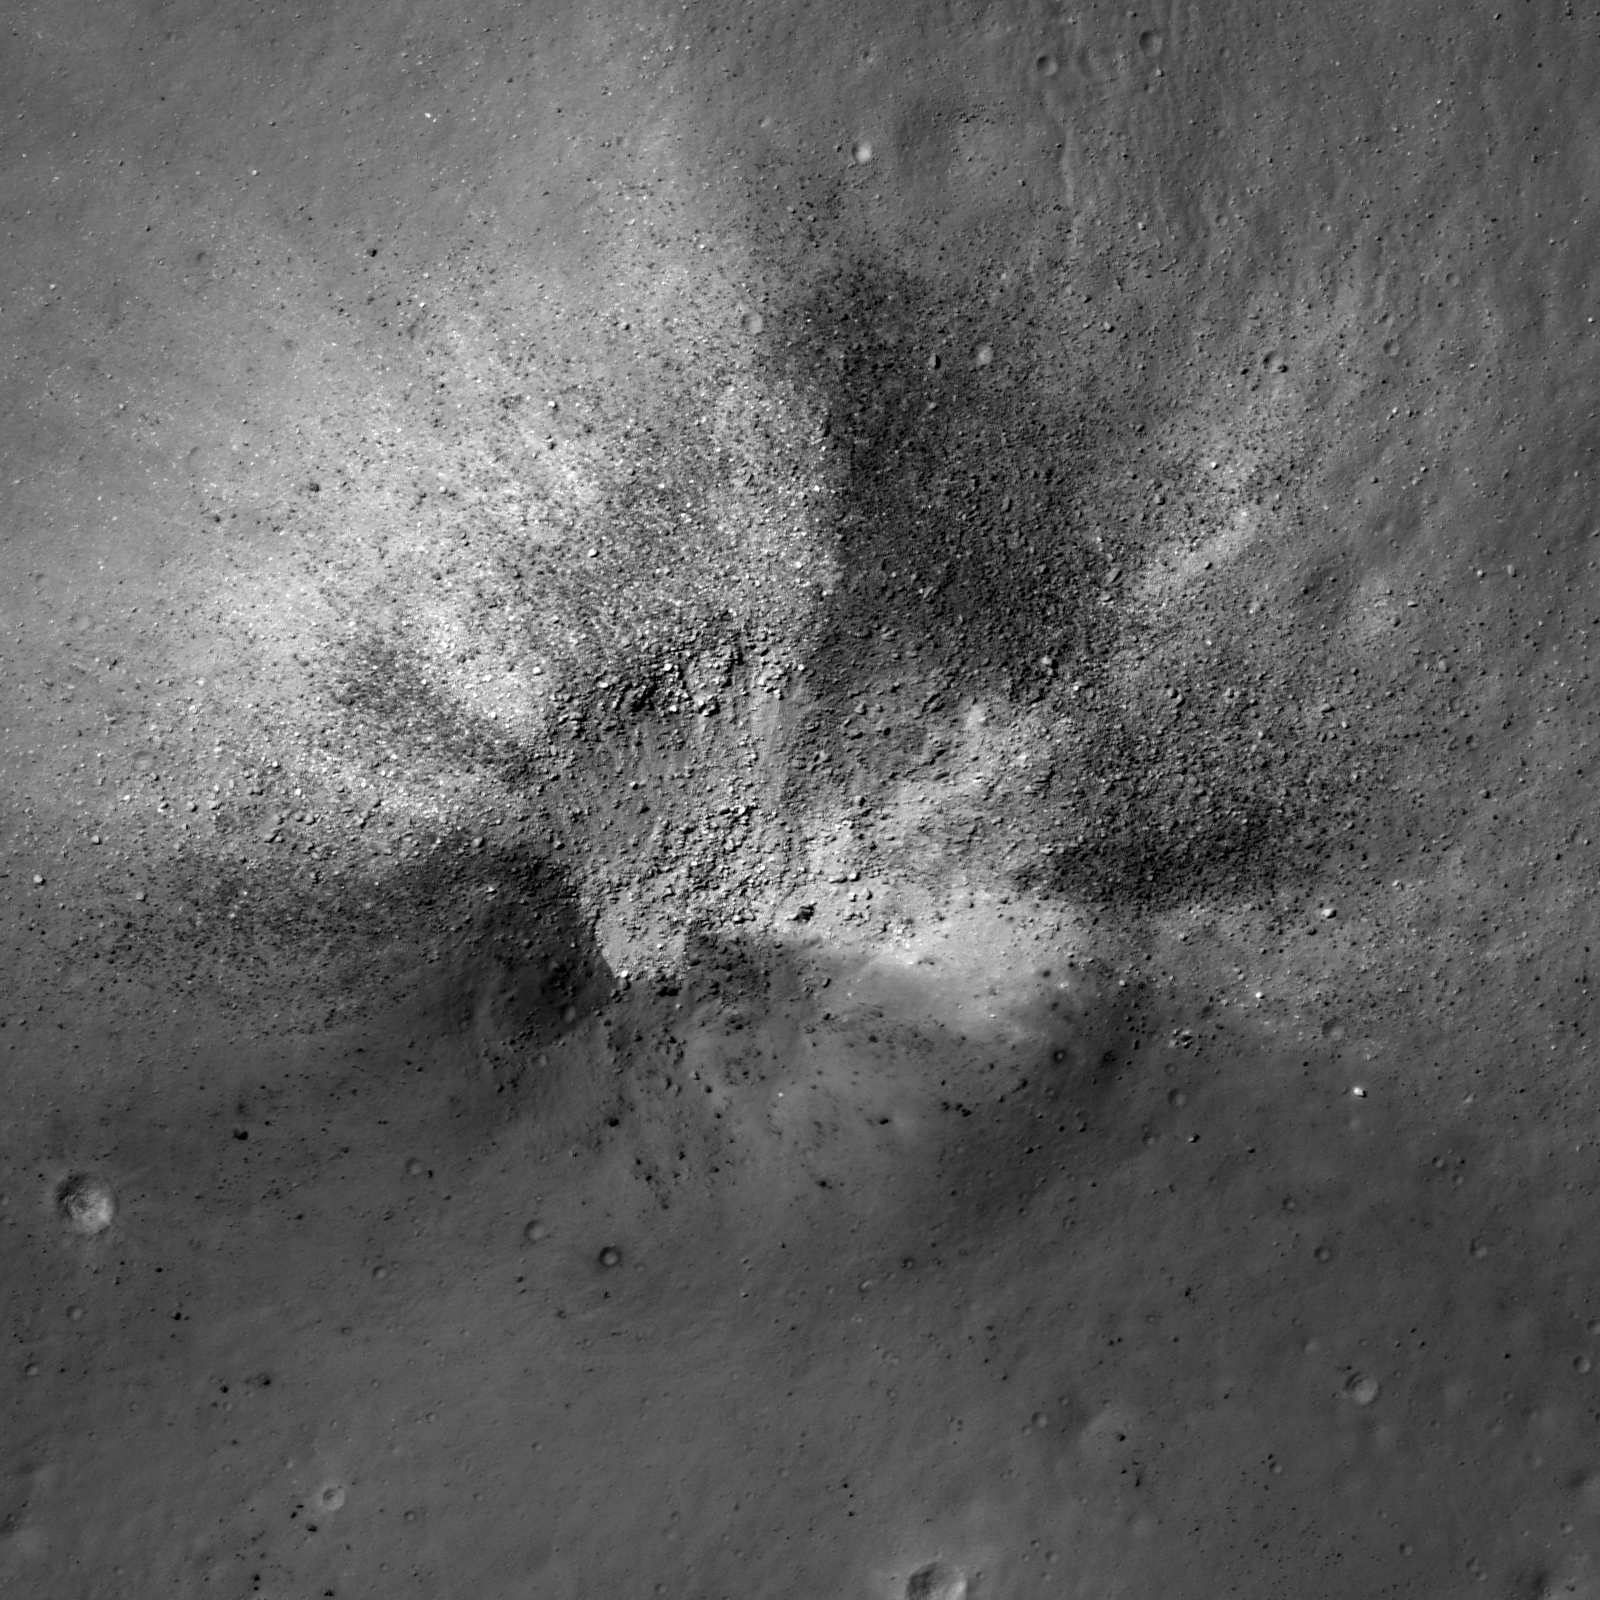 Not Your Average Crater